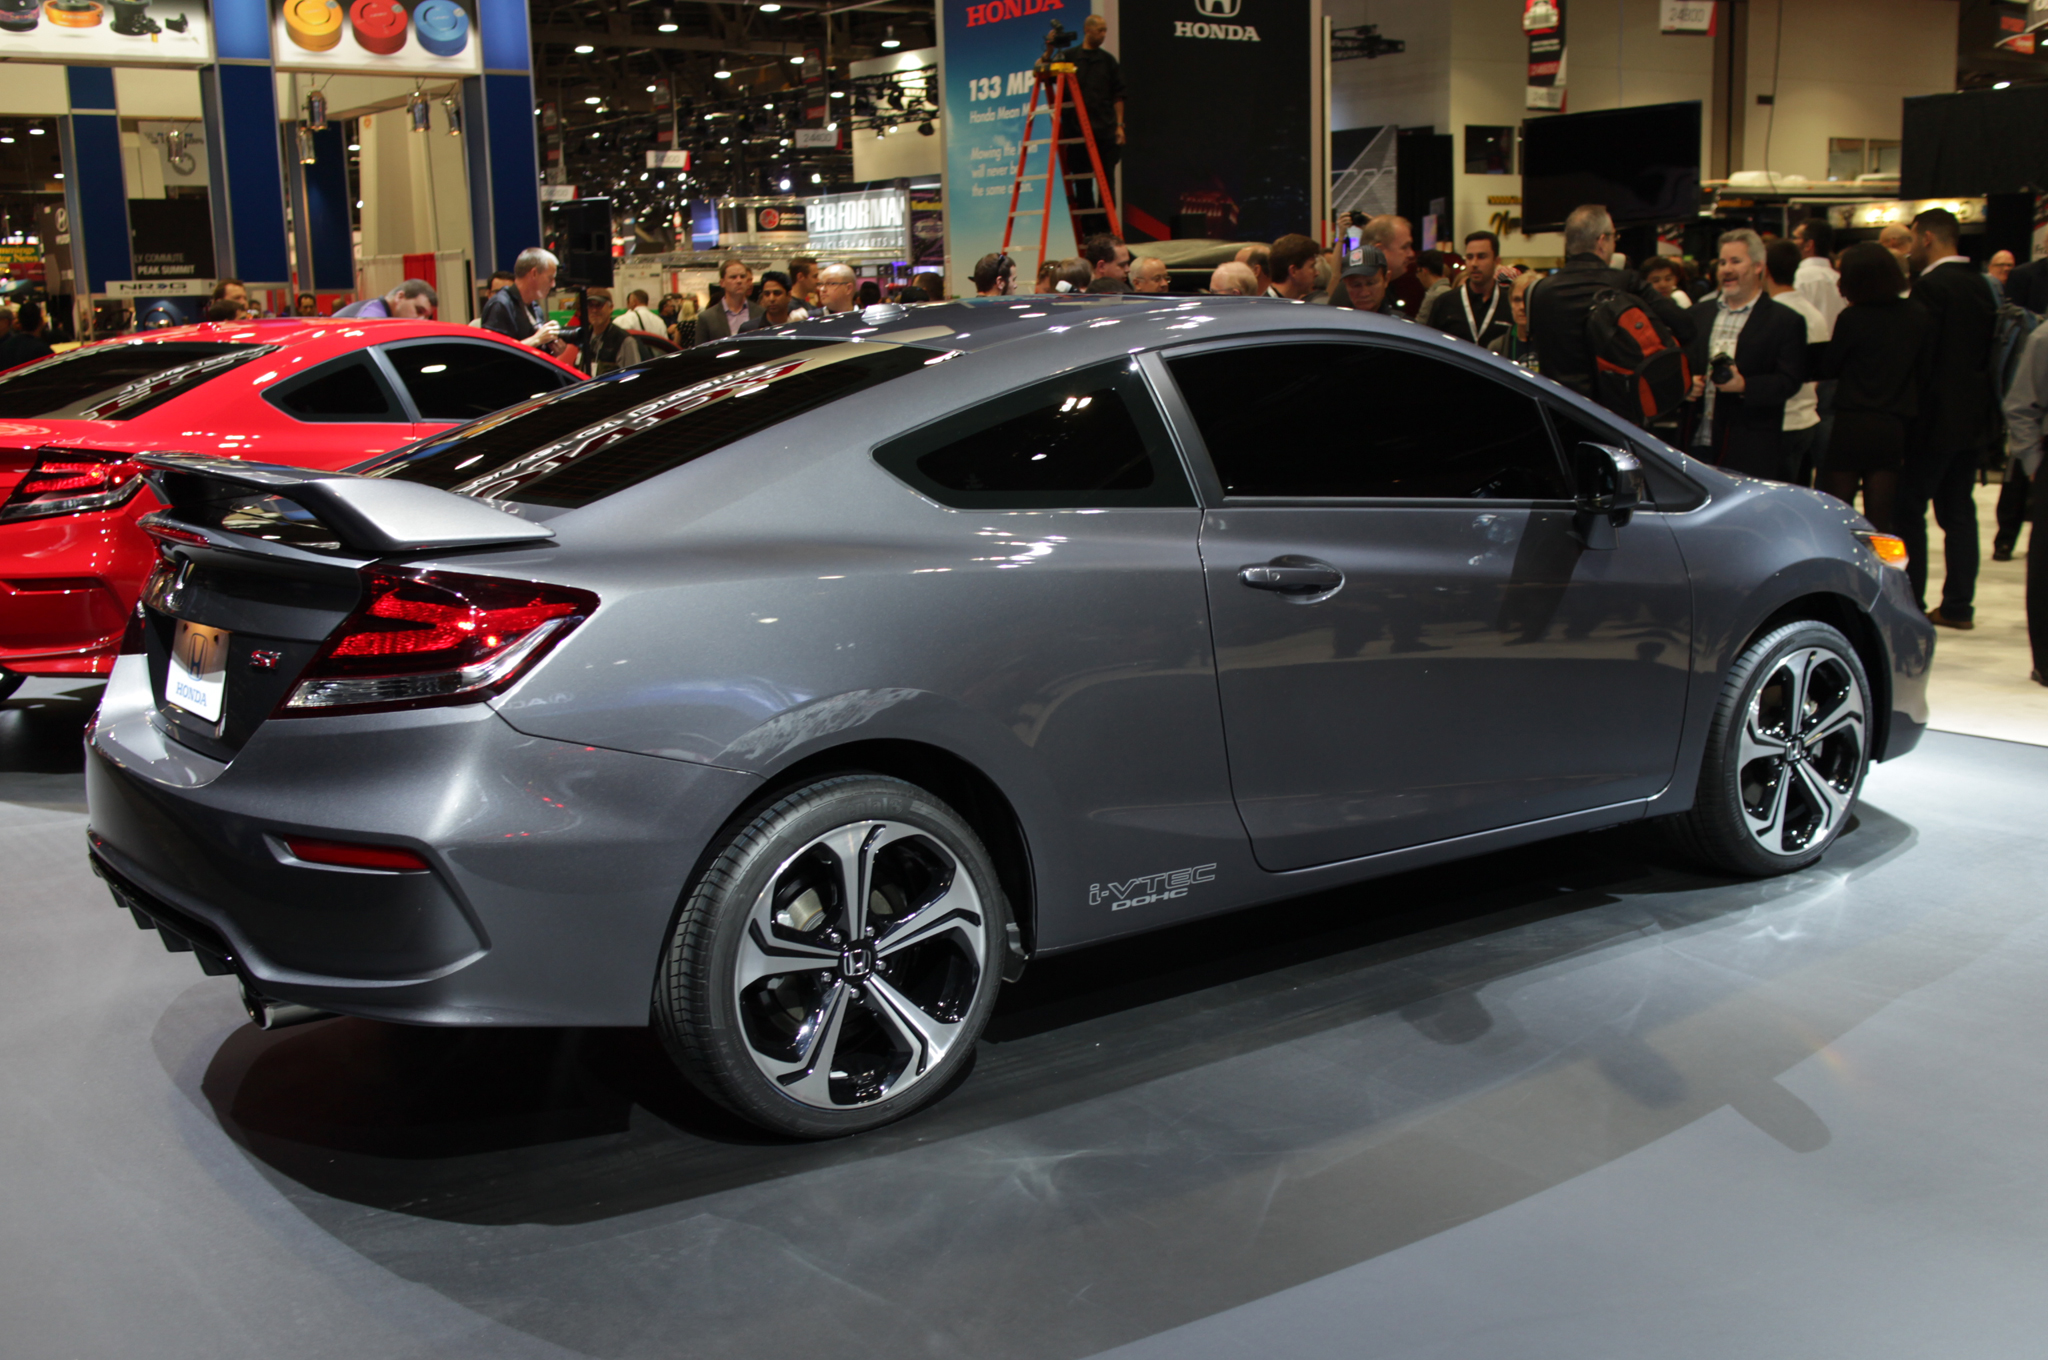 honda civic coupe si 2014 deportivo potente interesante y muy seguro lista de carros. Black Bedroom Furniture Sets. Home Design Ideas